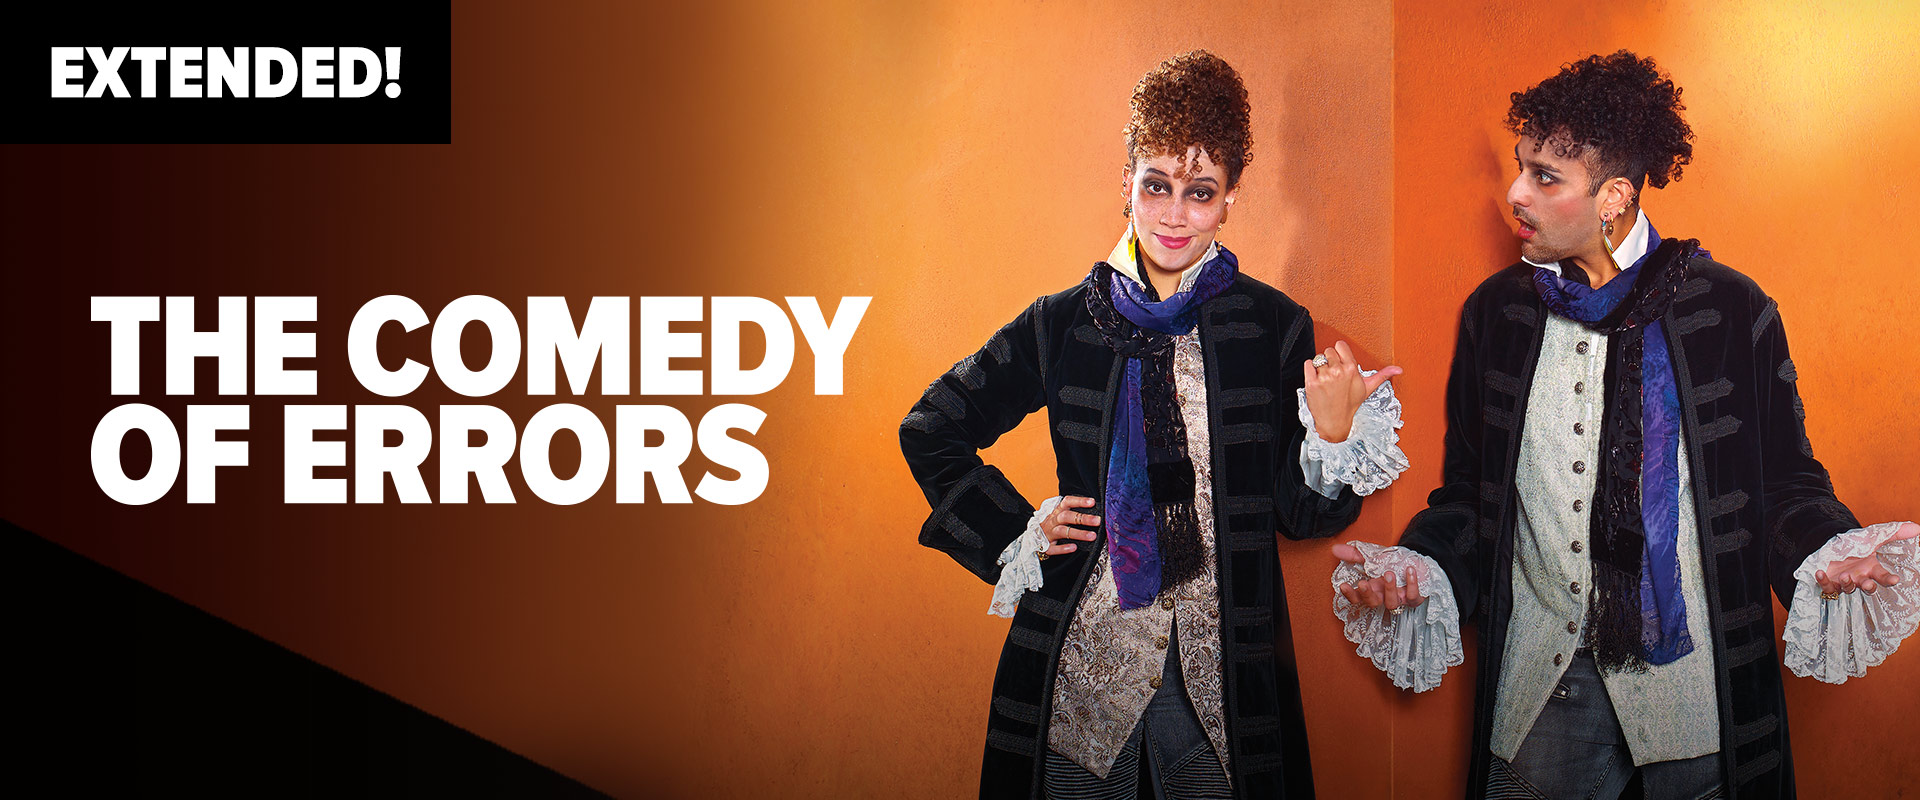 Publicity image from The Comedy of Errors